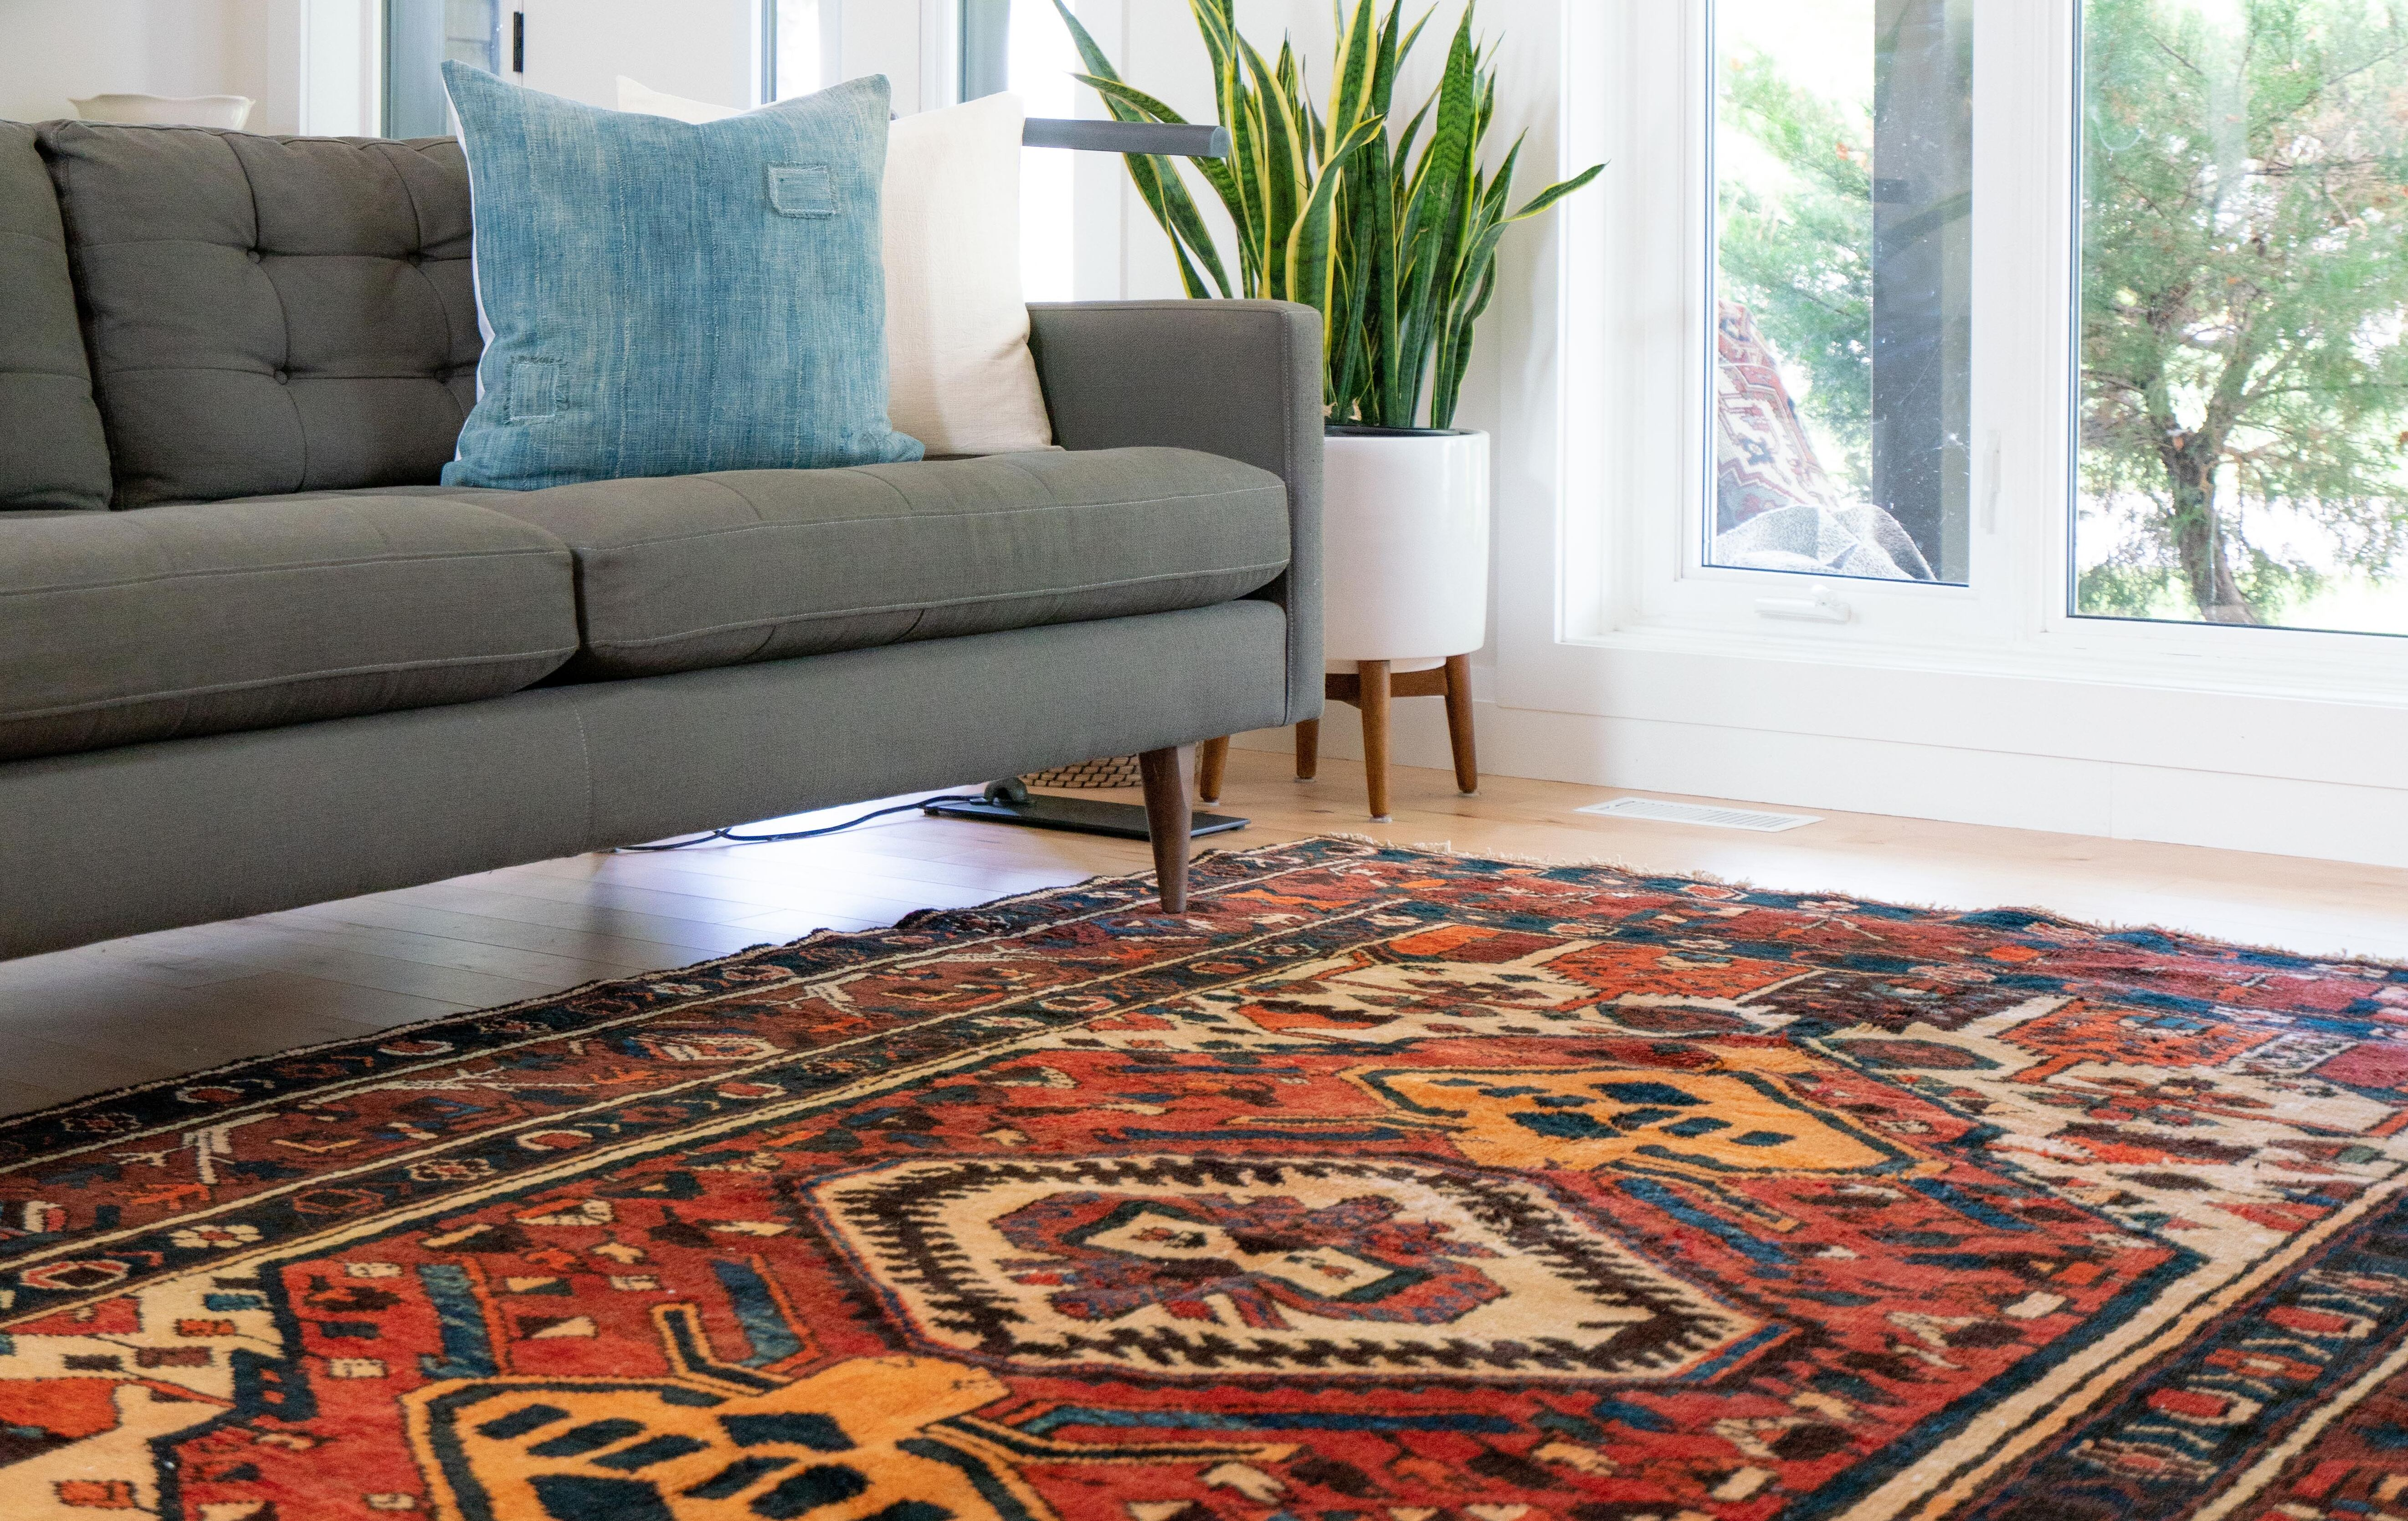 The Only Effective Way To Deep Clean An Area Rug Zerorez